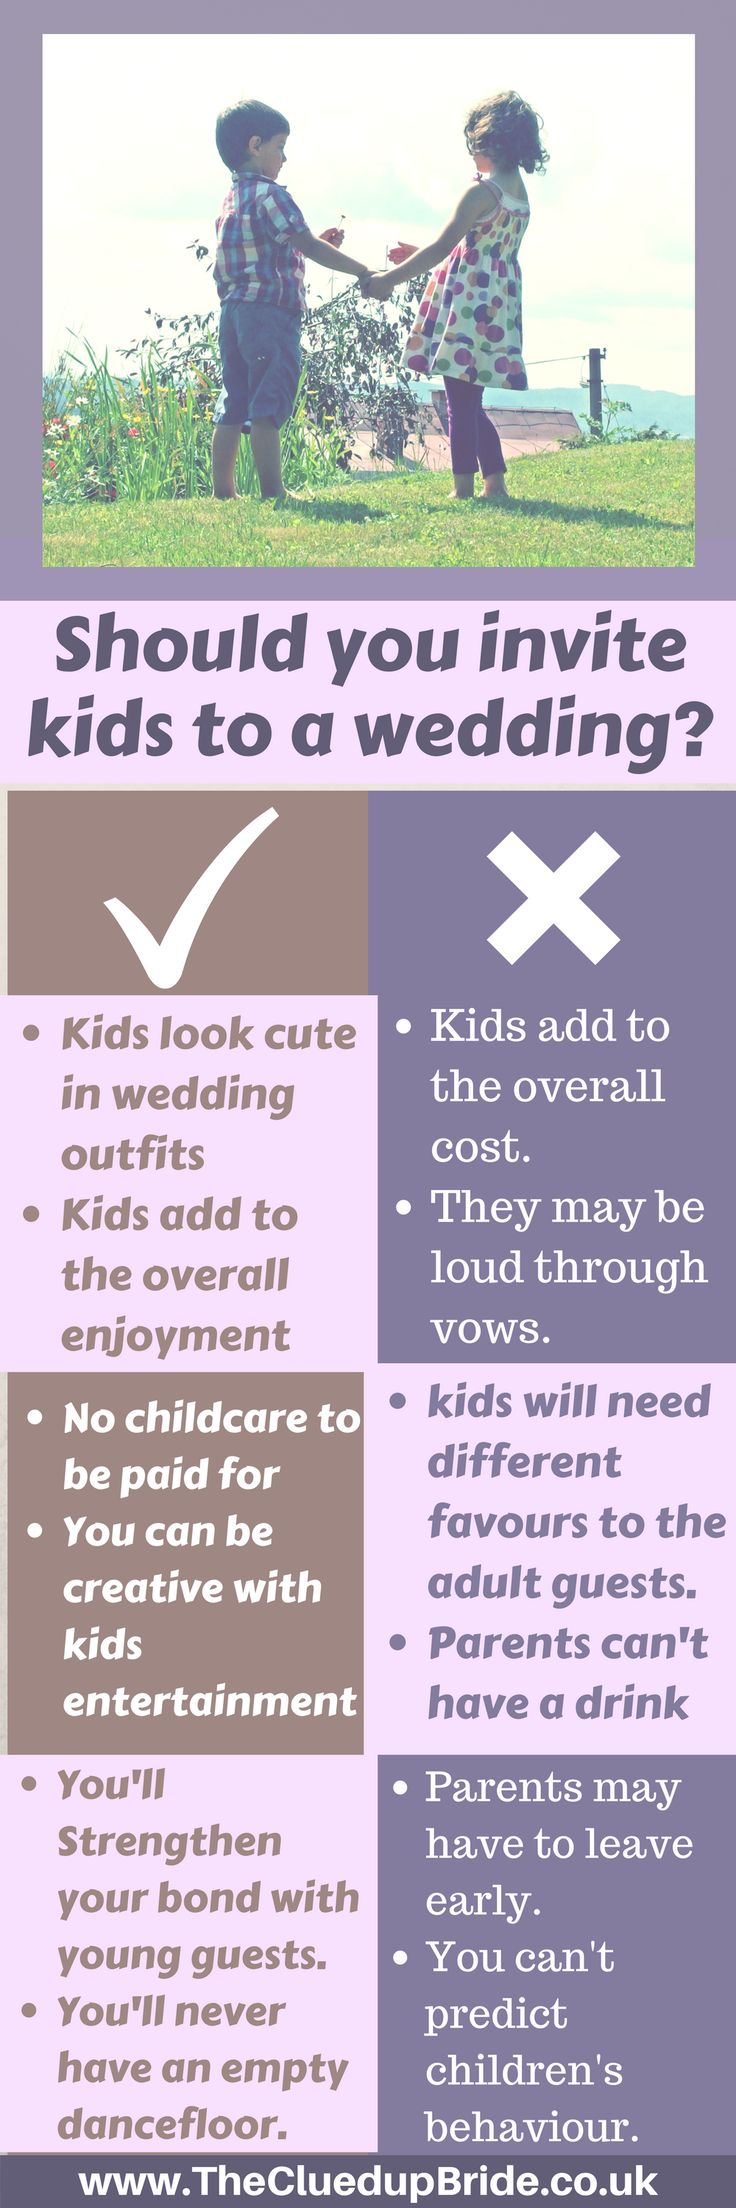 Should you invite kids to your wedding?How will you break the news of a child free wedding to parents? Have you thought about different wedding favours for kids? Here are the pros and cons before you send out those invitations!